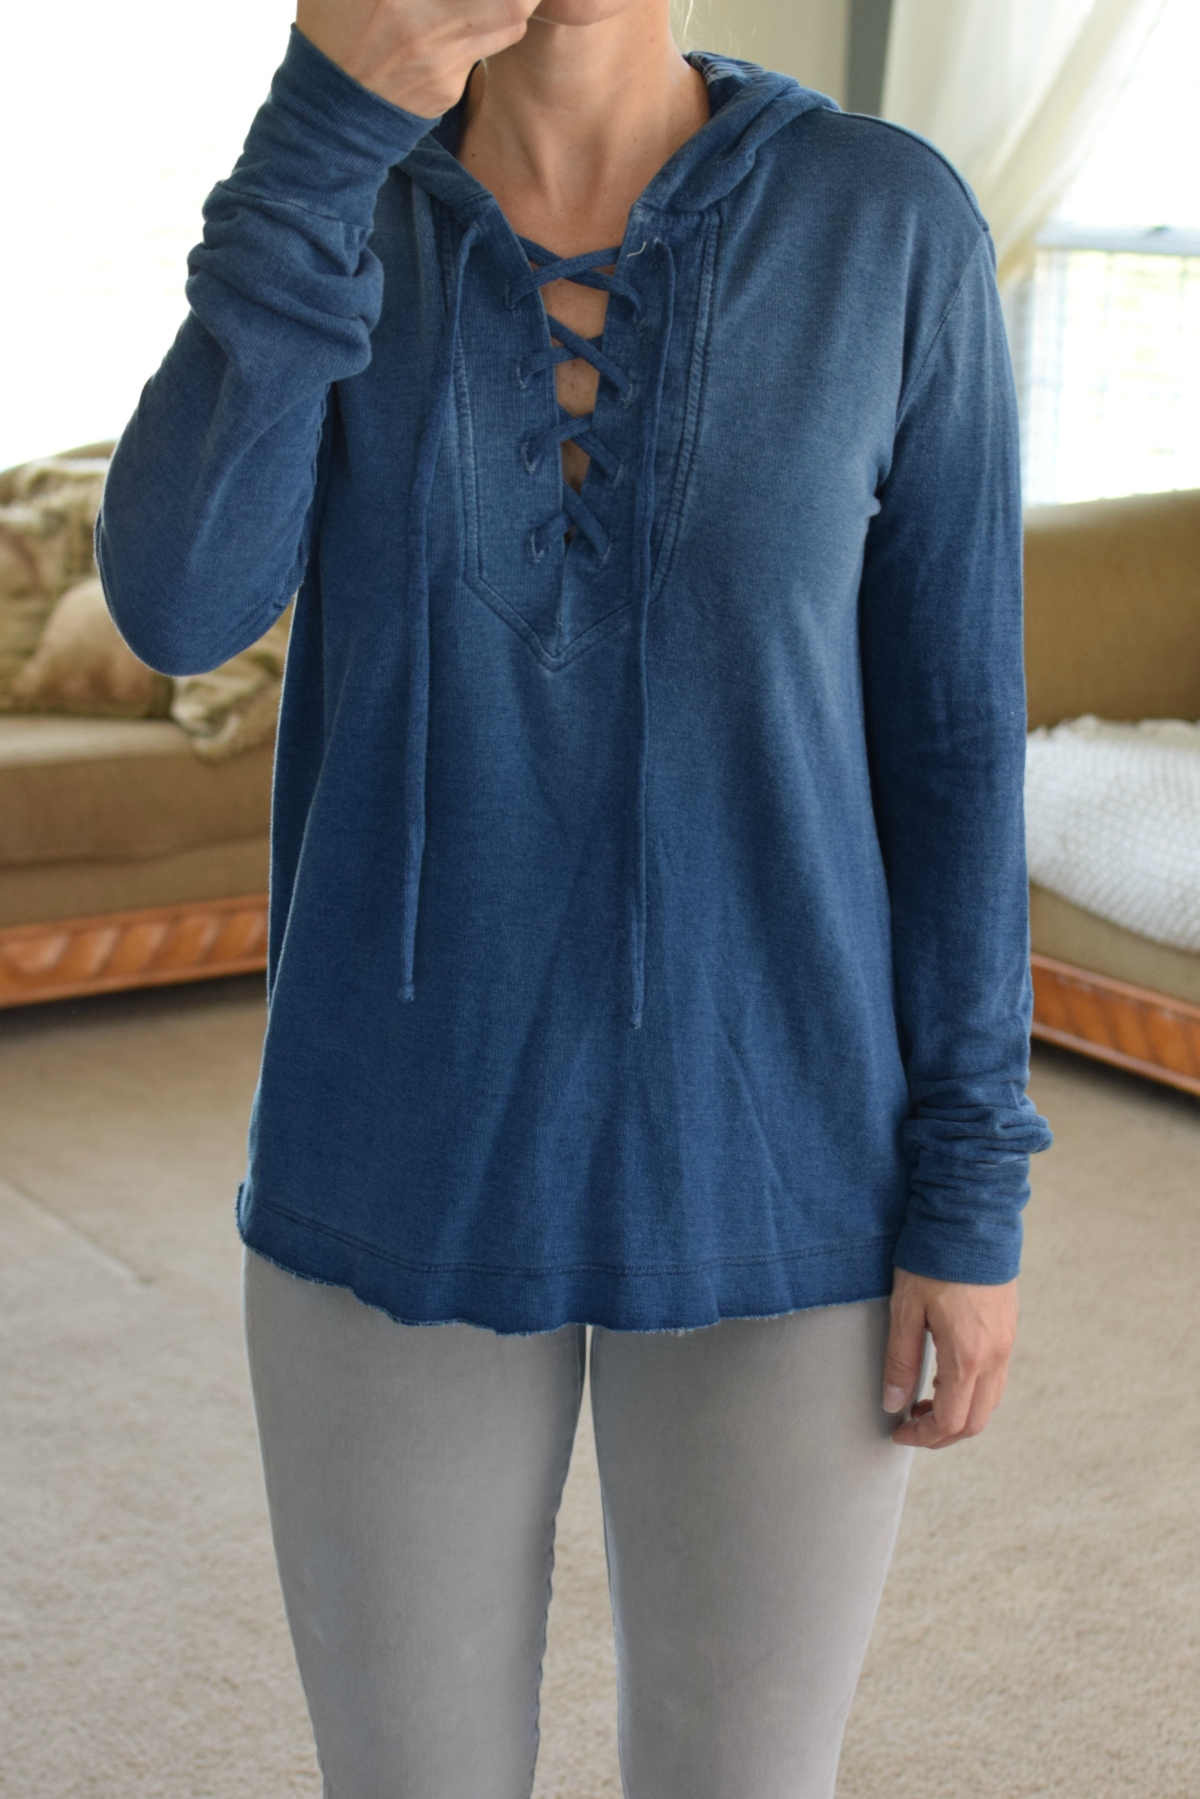 Stitch Fix Review October 2017: Bella Dahl Taylor Lace-Up Hoodie |www.pearlsandsportsbras.com|